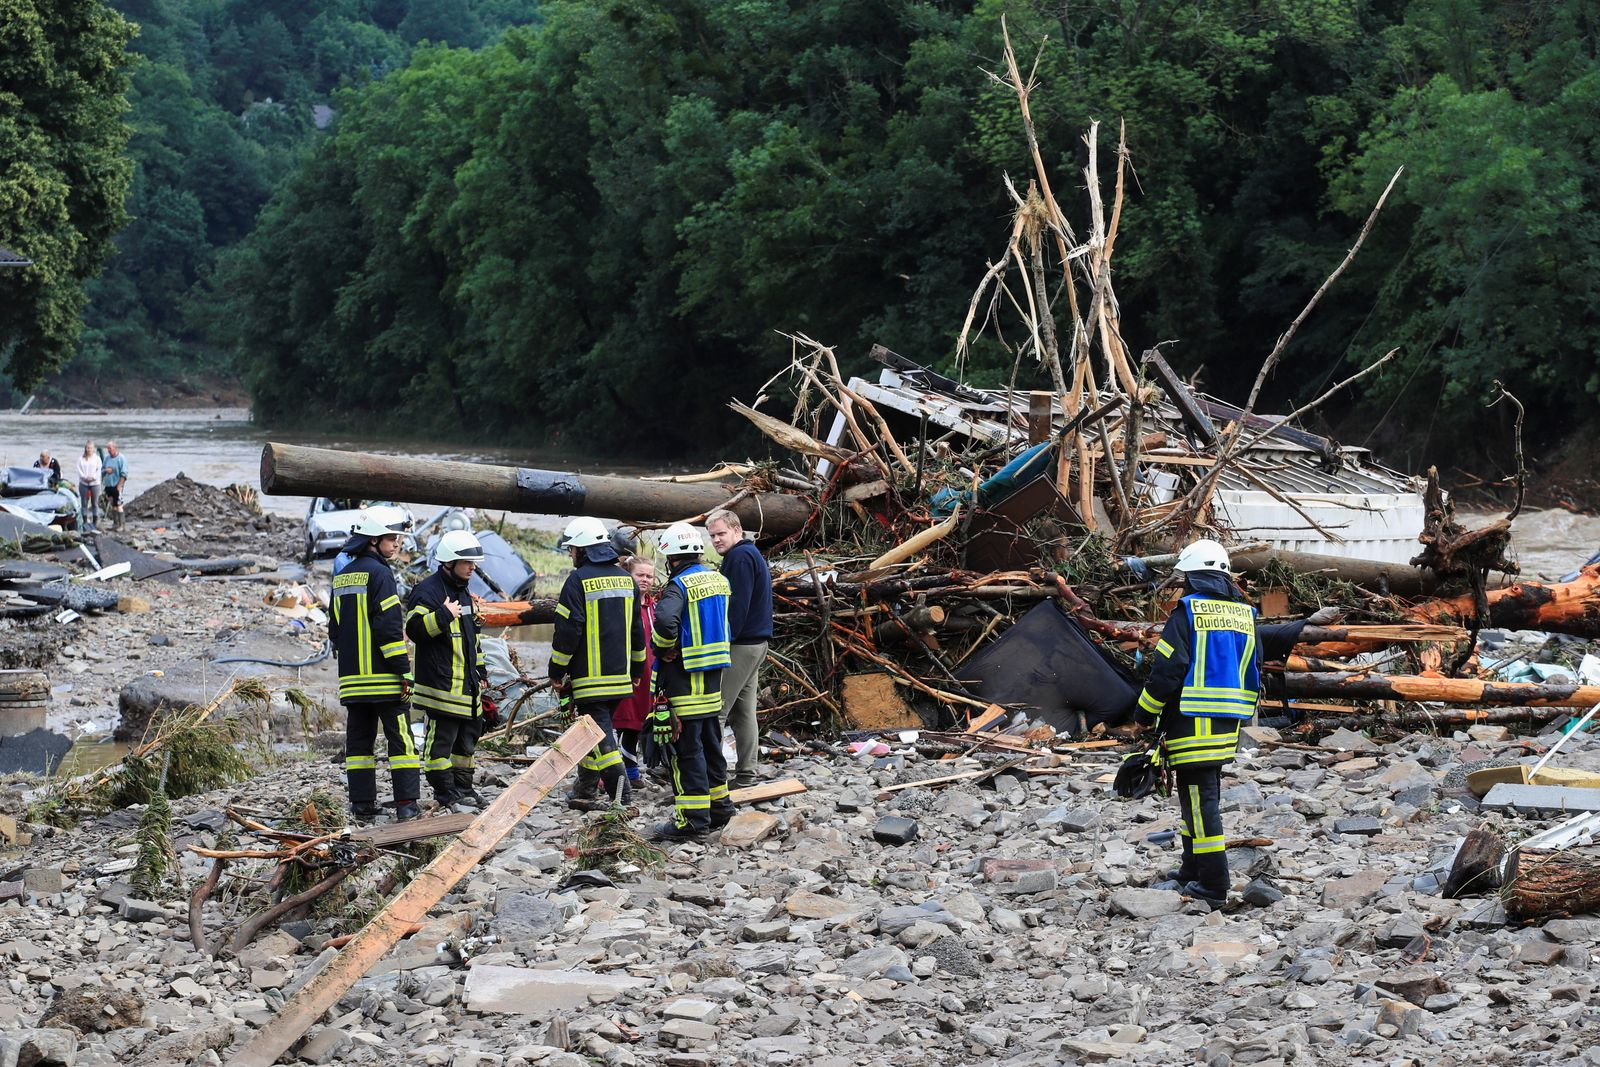 Firefighters speak with people next to debris brought by the flood following heavy rainfalls in Schuld